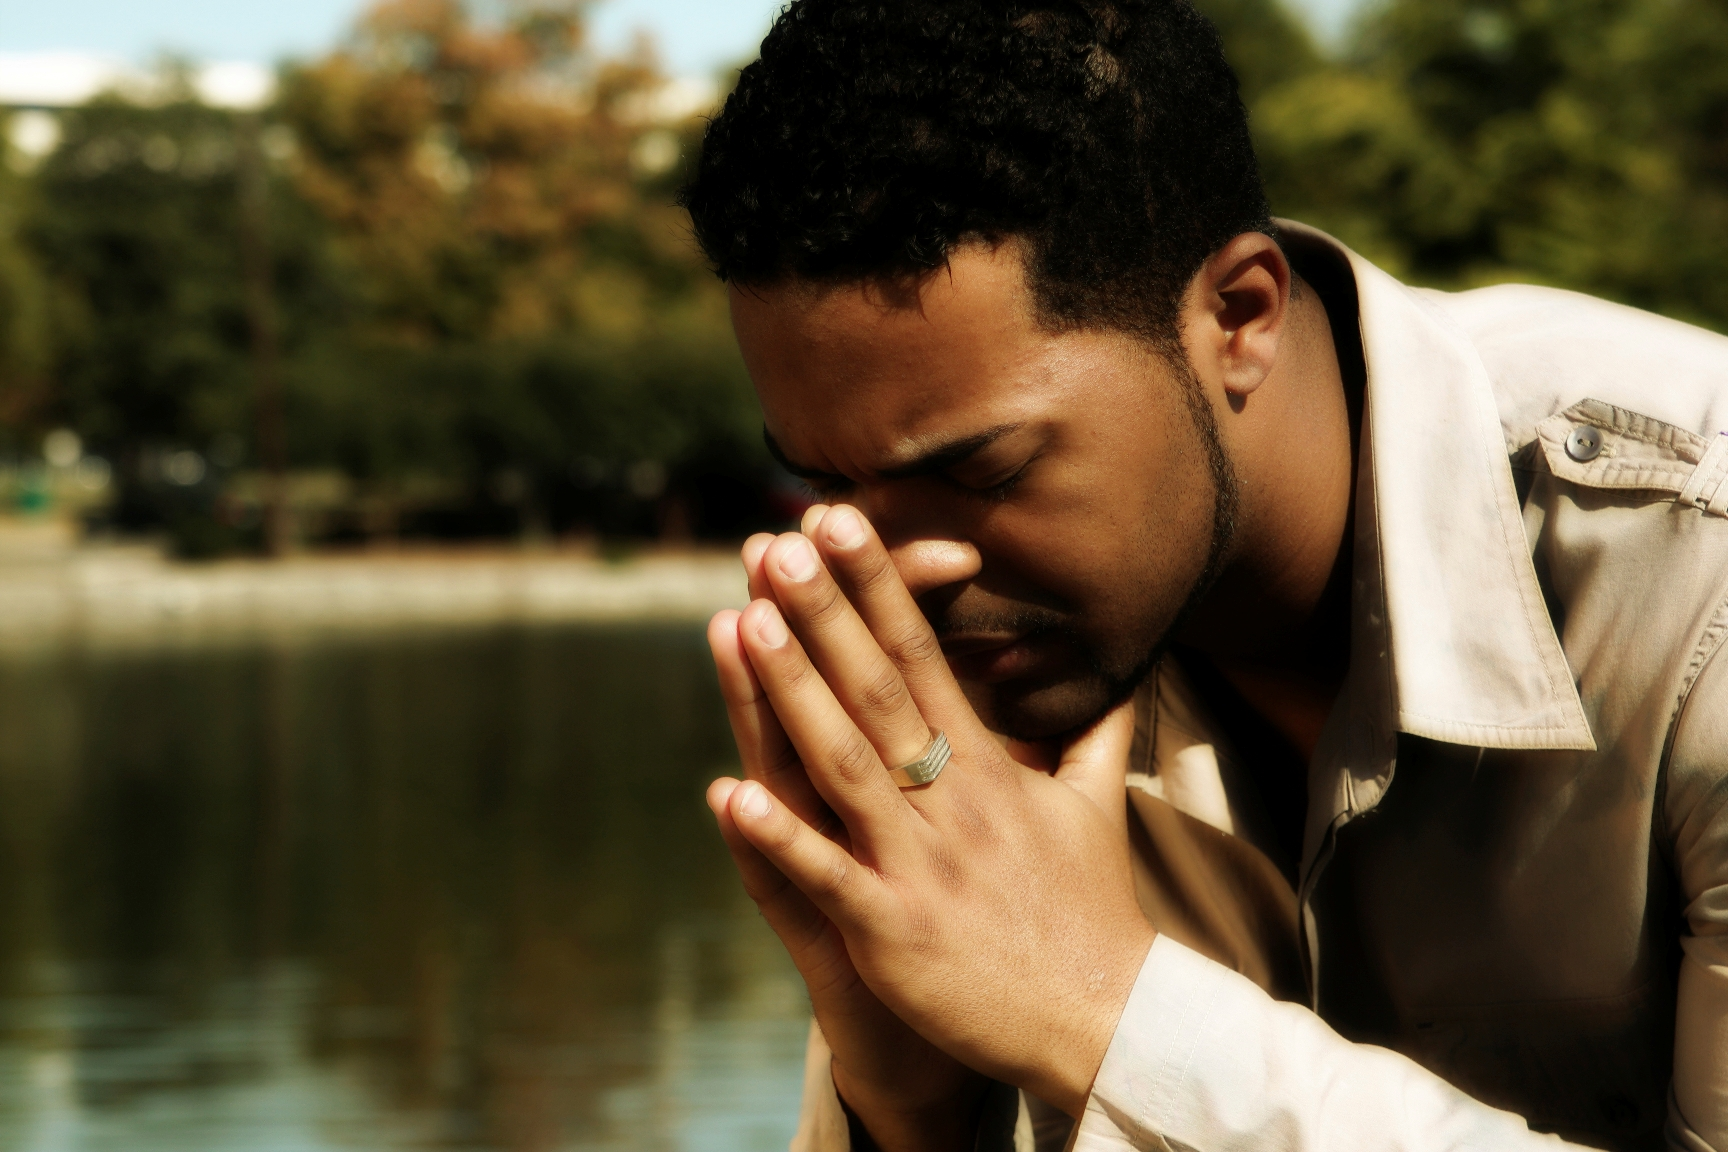 man-in-prayer